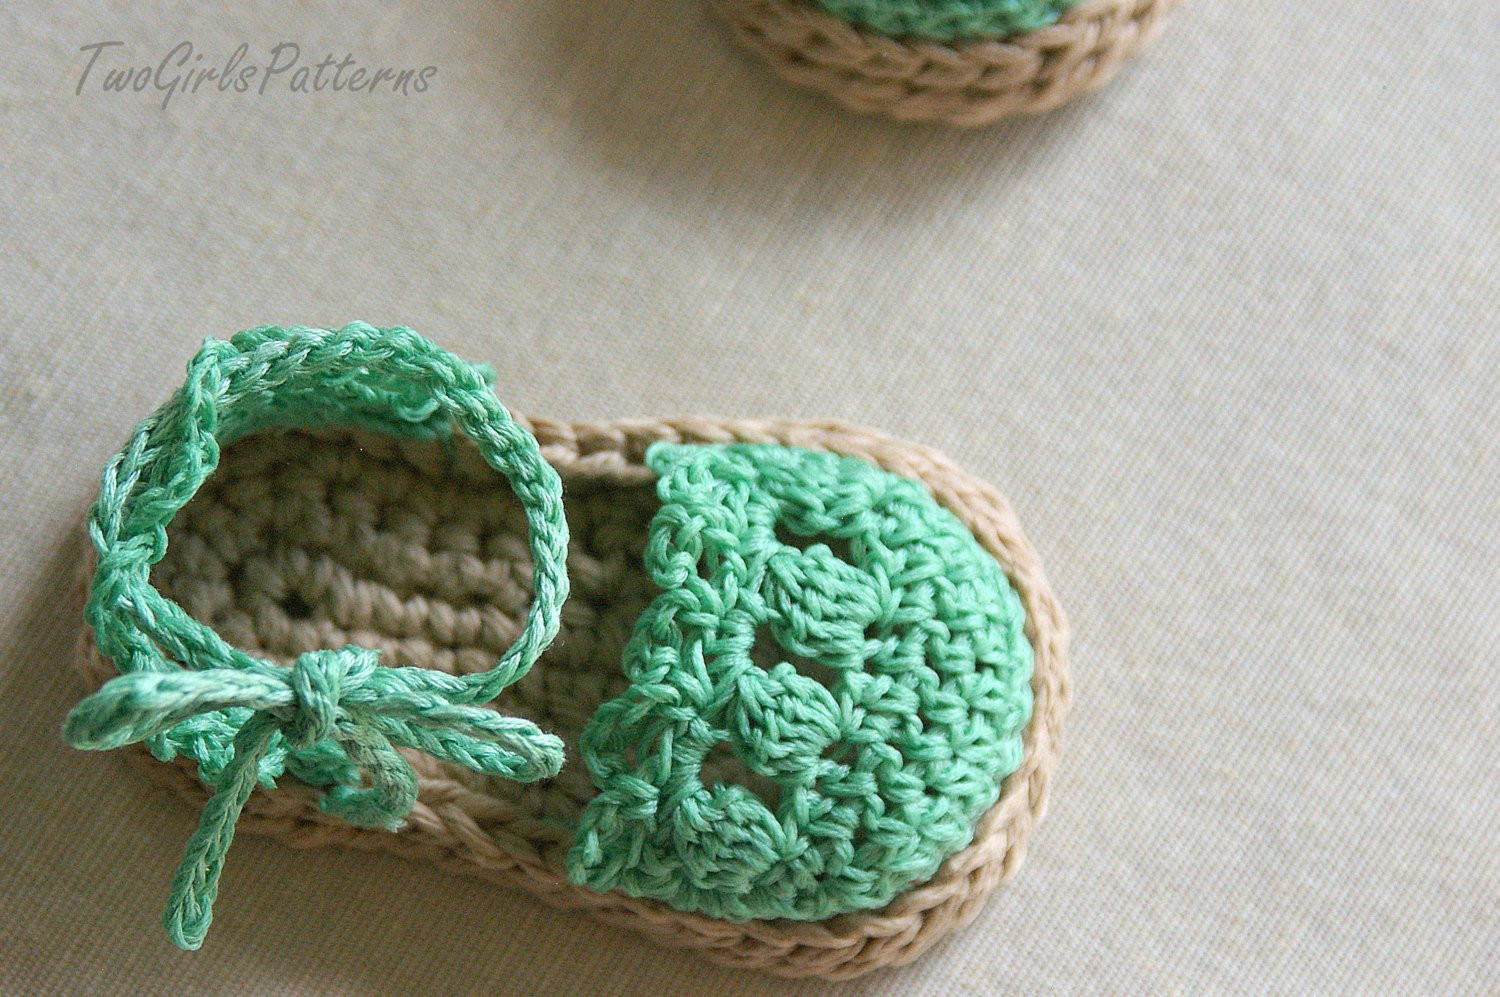 Baby Girl Crochet Patterns New Crochet Pattern 119 Baby Girl Espadrille Sandals Of Perfect 45 Models Baby Girl Crochet Patterns